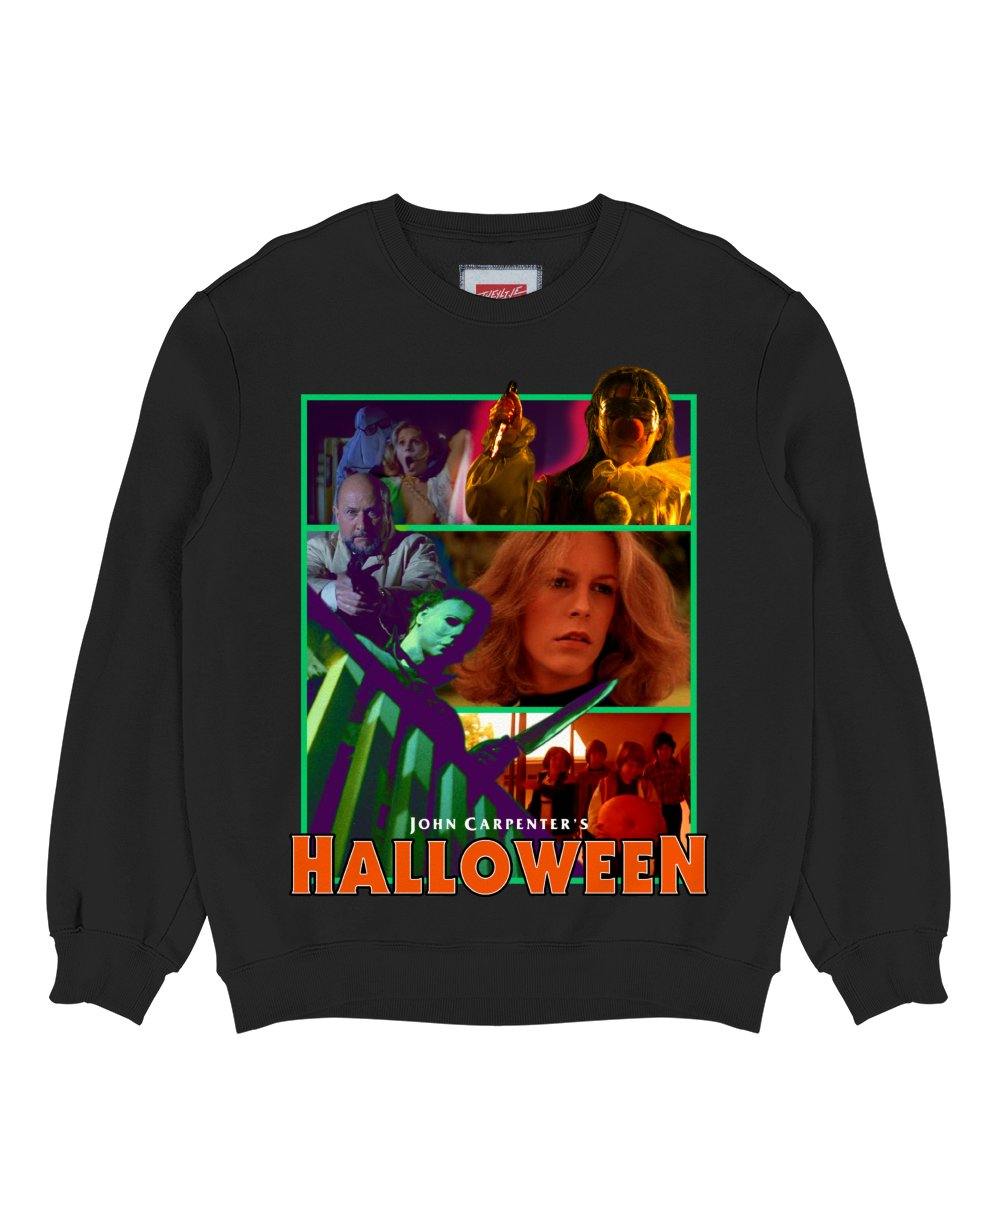 HALLOWEEN Print Sweatshirt in Black